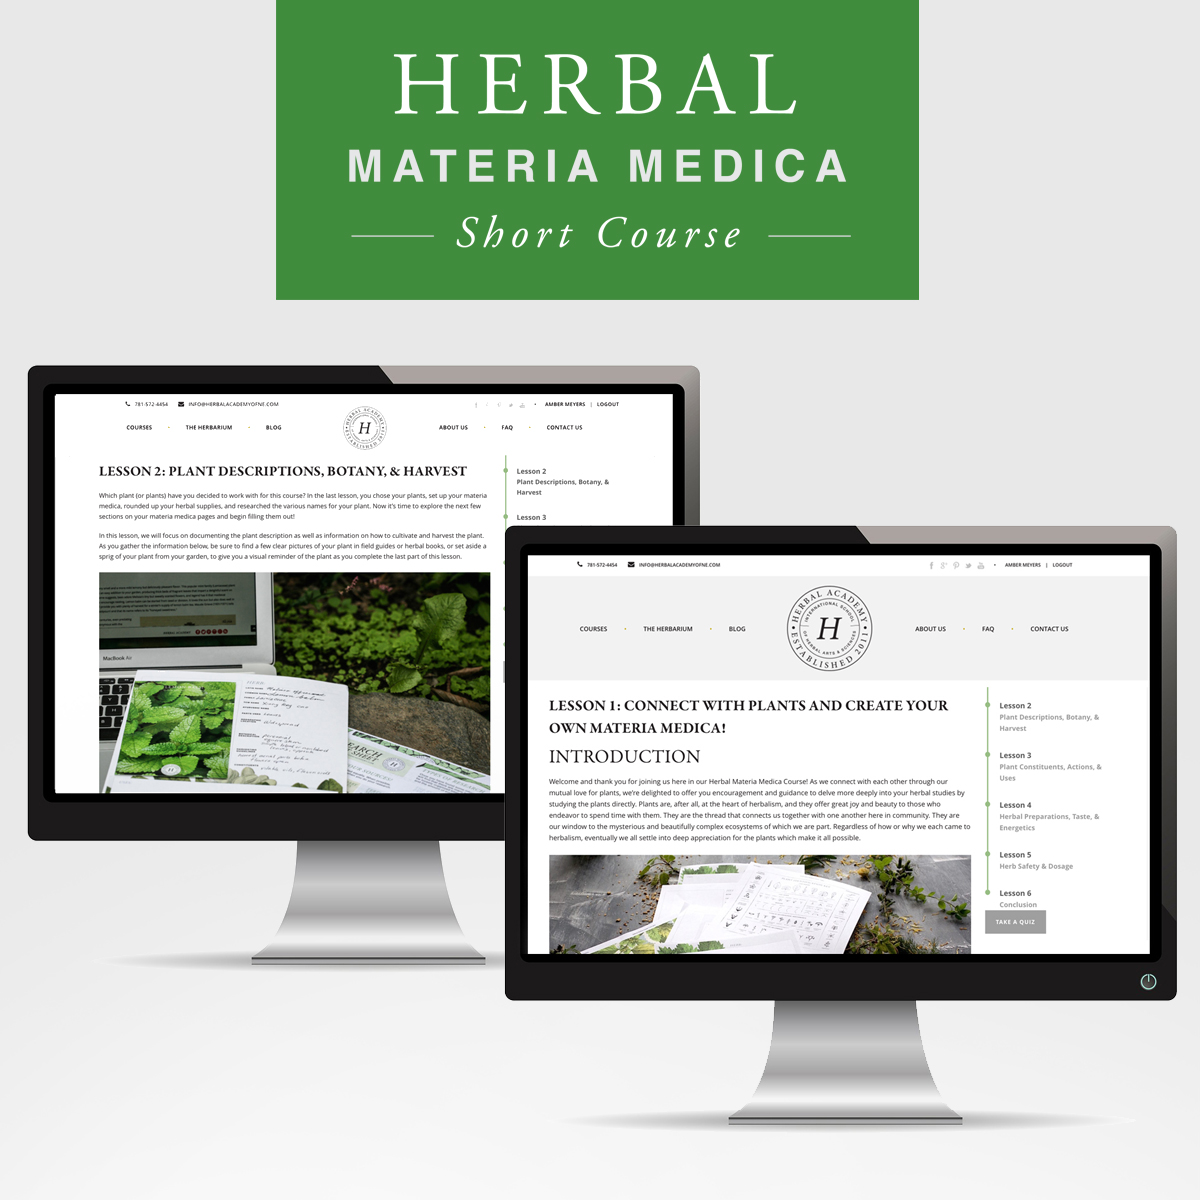 Gathering Supplies for your Herbal Materia Medica | Herbal Academy | Learn what supplies you should have on hand when creating your herbal materia medica right here!